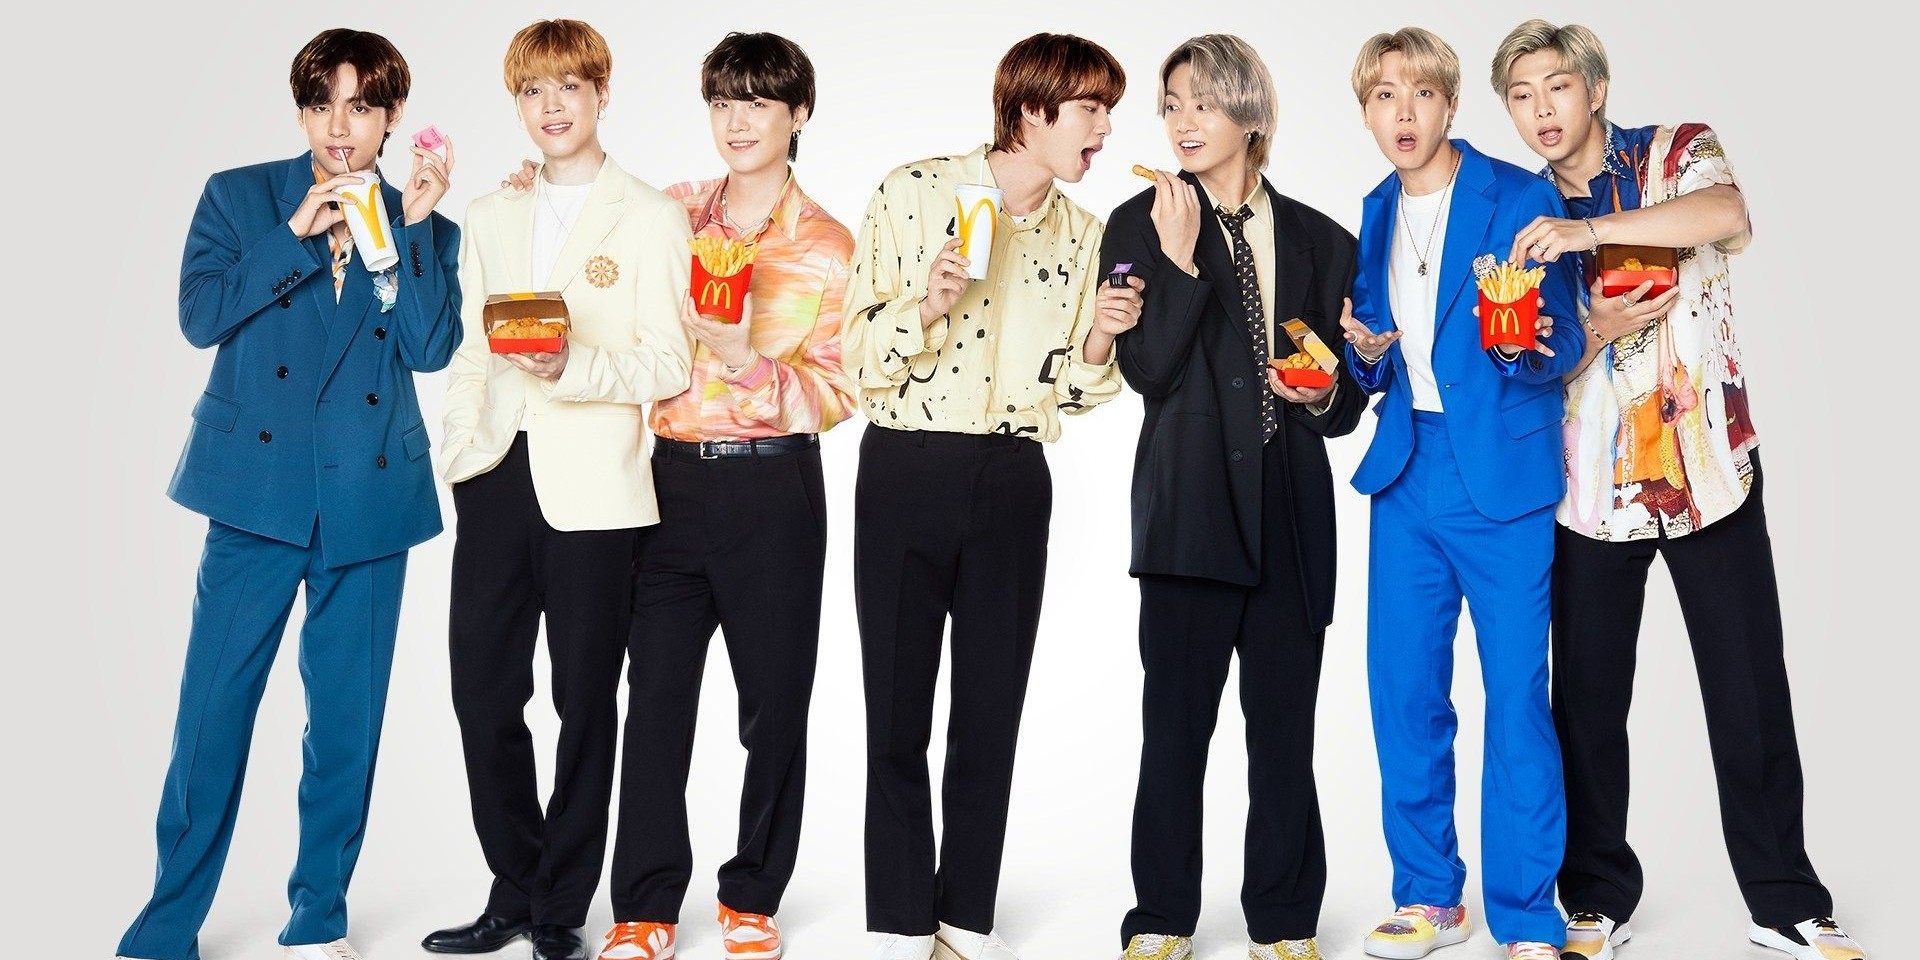 The BTS Meal is arriving in Singapore, only available via delivery: here's all you need to know